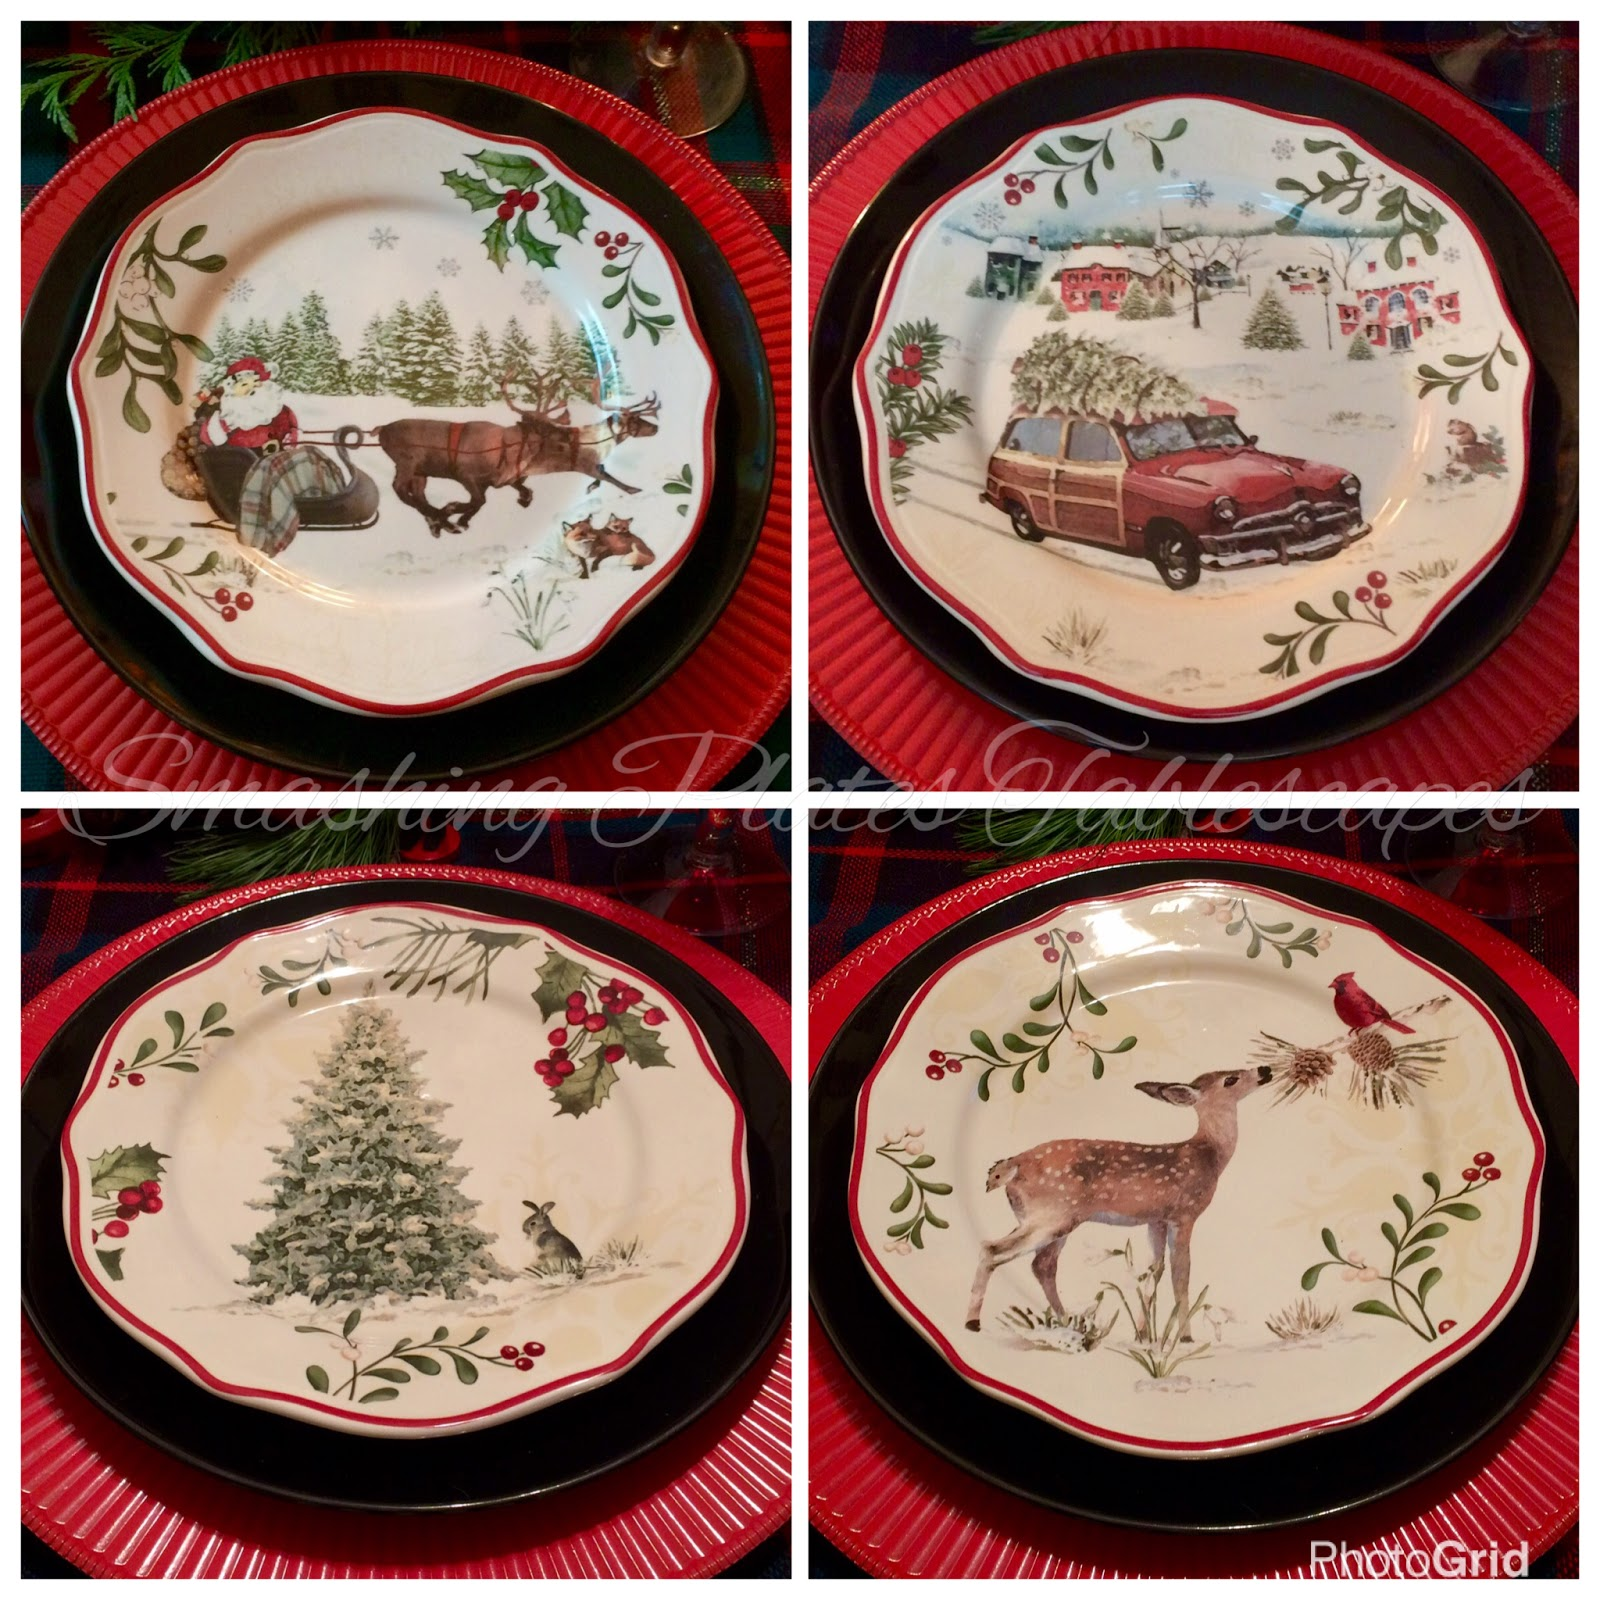 i love the better homes and gardens limited edition christmas plates in stock at walmart this year i used a black plate under the bhg plates to tie in the